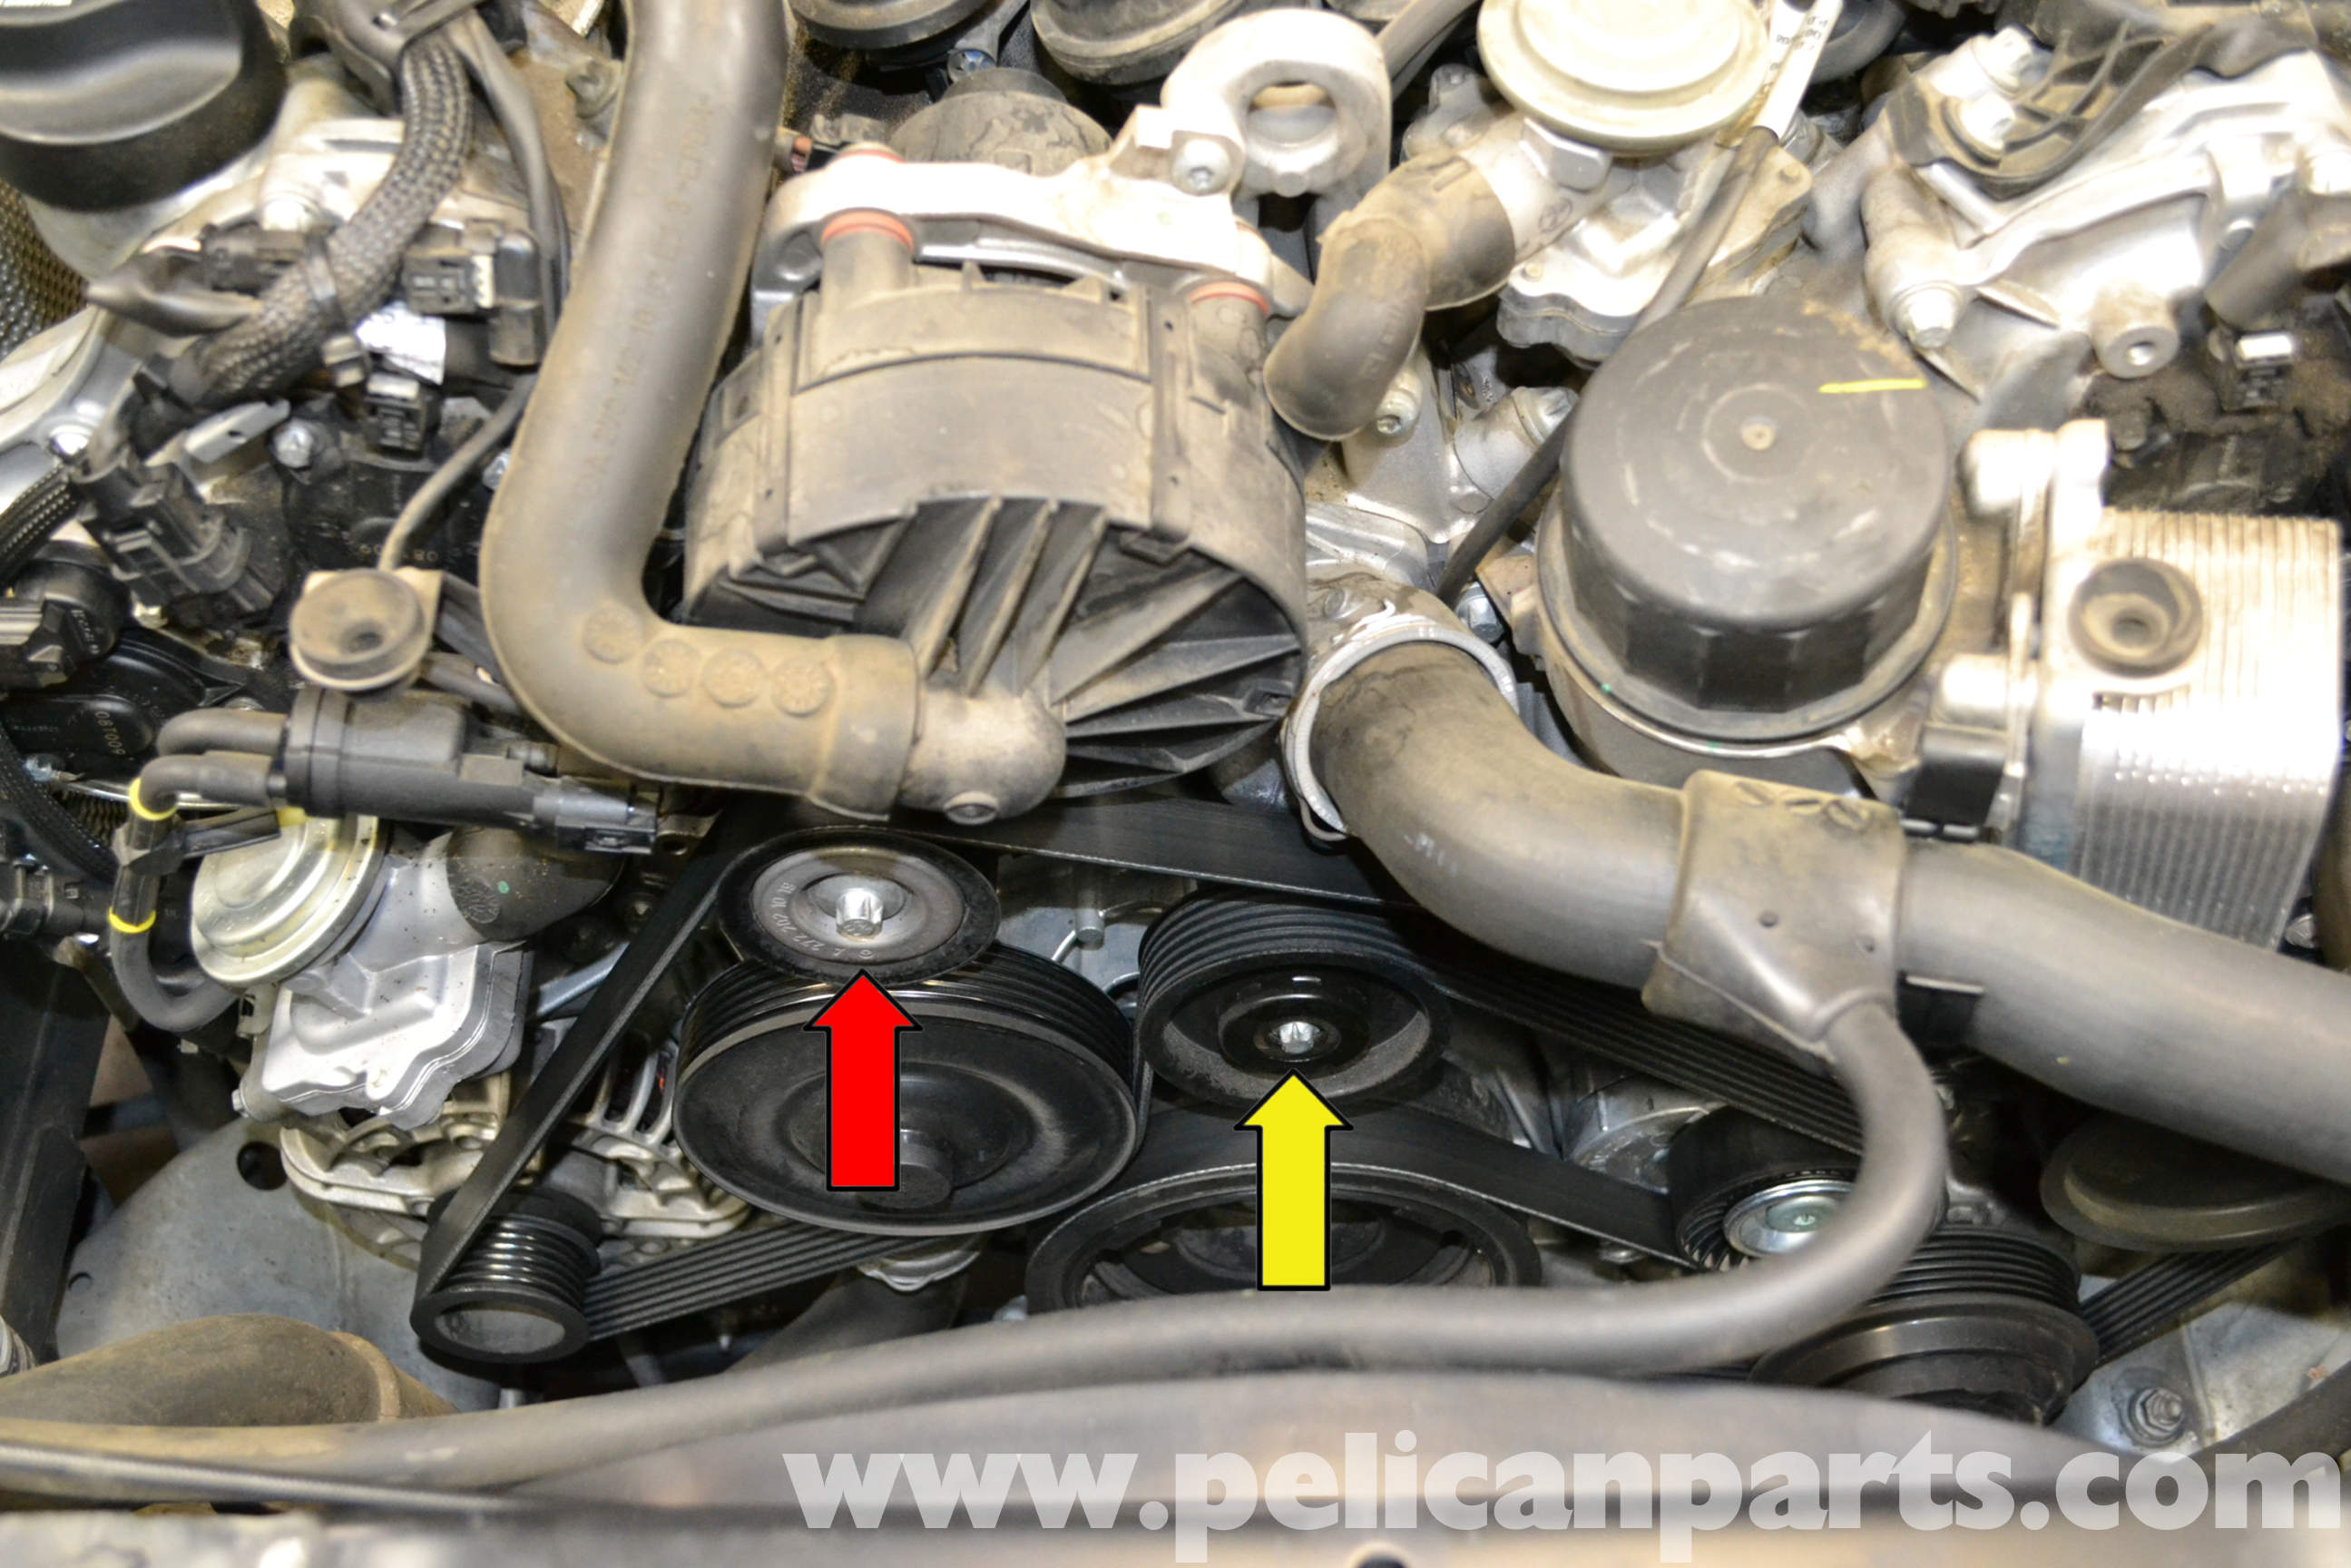 Ford E Series E 450 2015 Fuse Box Diagram likewise Find And Reset Fuel Cut Off Inertia Switch On Ford Fiesta also Watch together with Watch moreover 2000 Chrysler Town Country Engine Fuse Box Diagram. on gmc fuel pump relay location